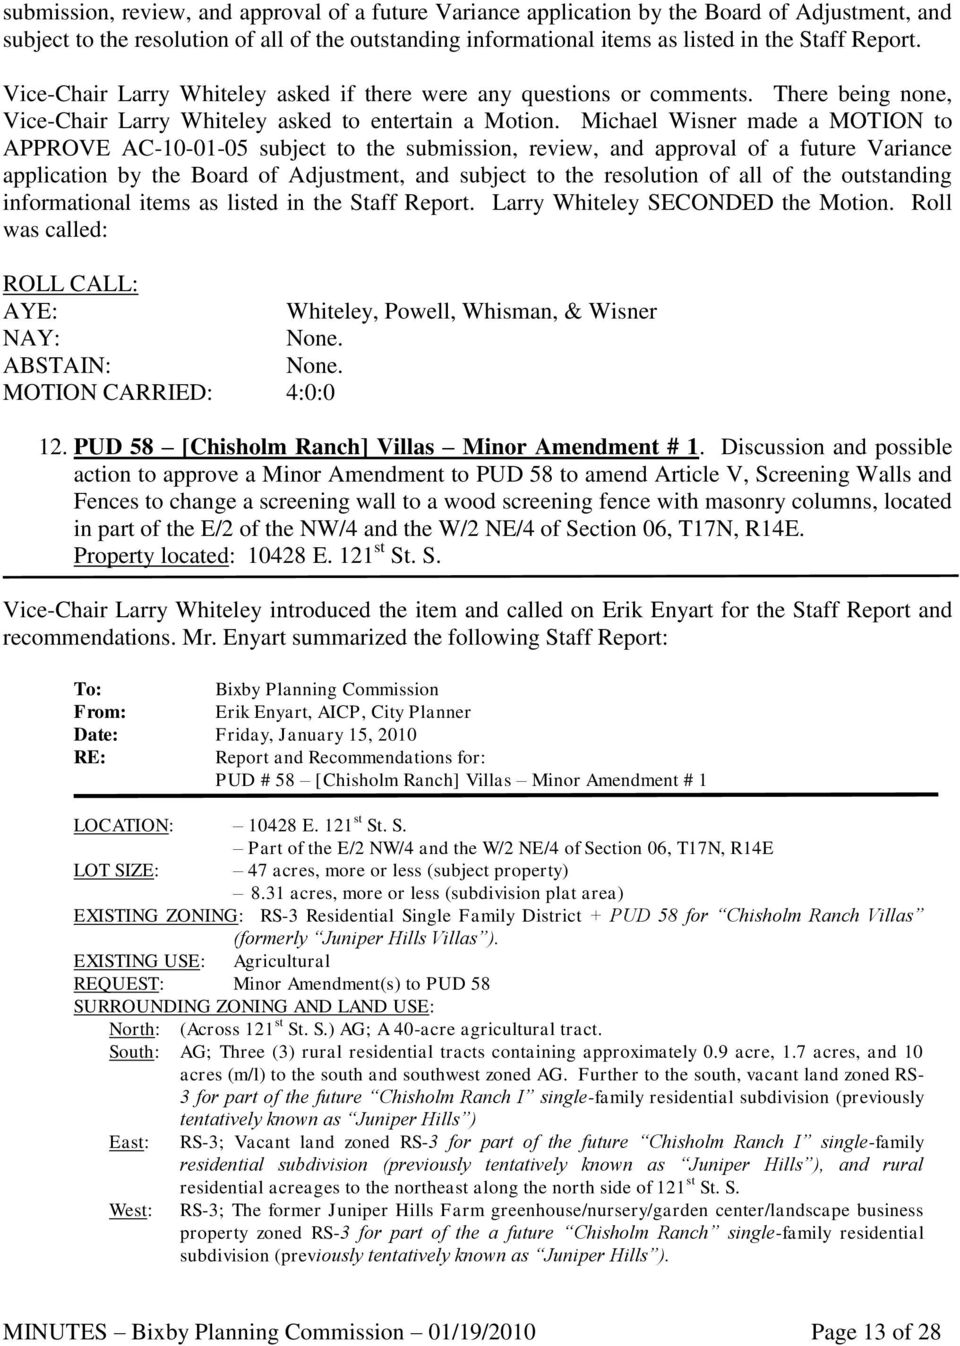 Michael Wisner made a MOTION to APPROVE AC-10-01-05 subject to the  Larry Whiteley SECONDED the Motion. Roll was called: ROLL CALL: AYE: Whiteley, Powell, Whisman, & Wisner NAY: None. ABSTAIN: None.